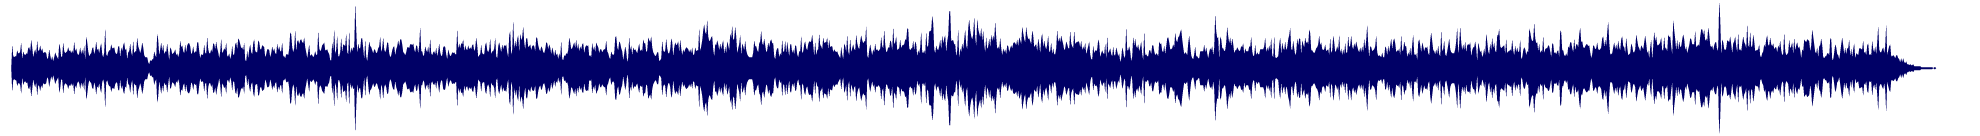 waveform of track #67043